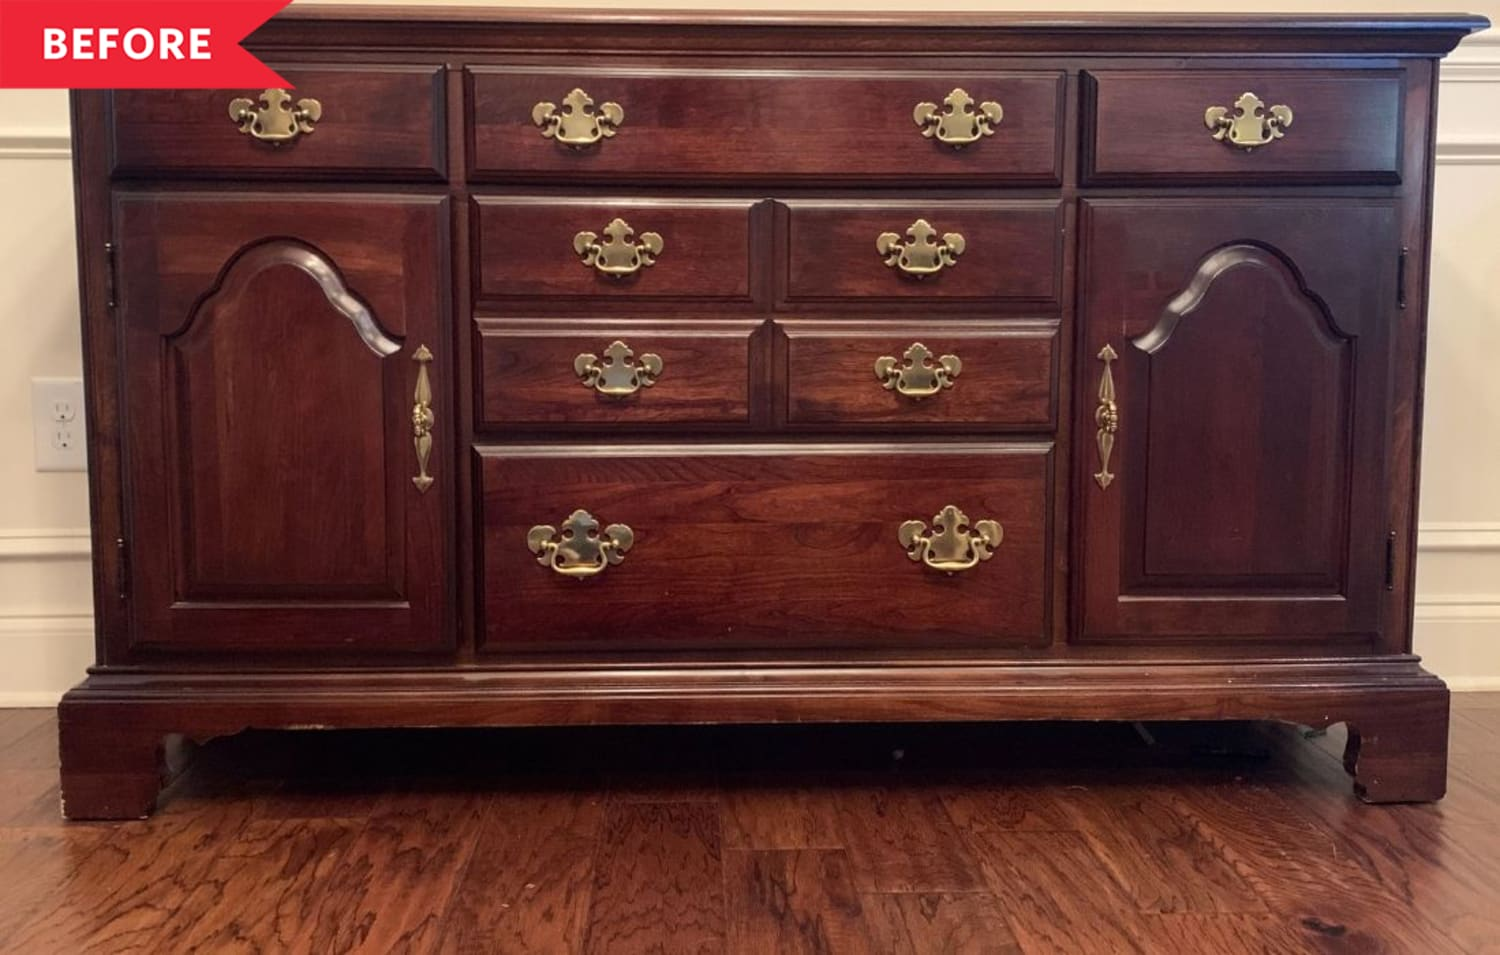 Before & After: A Traditional Sideboard Gets a Cool, Modern Makeover for Just $180